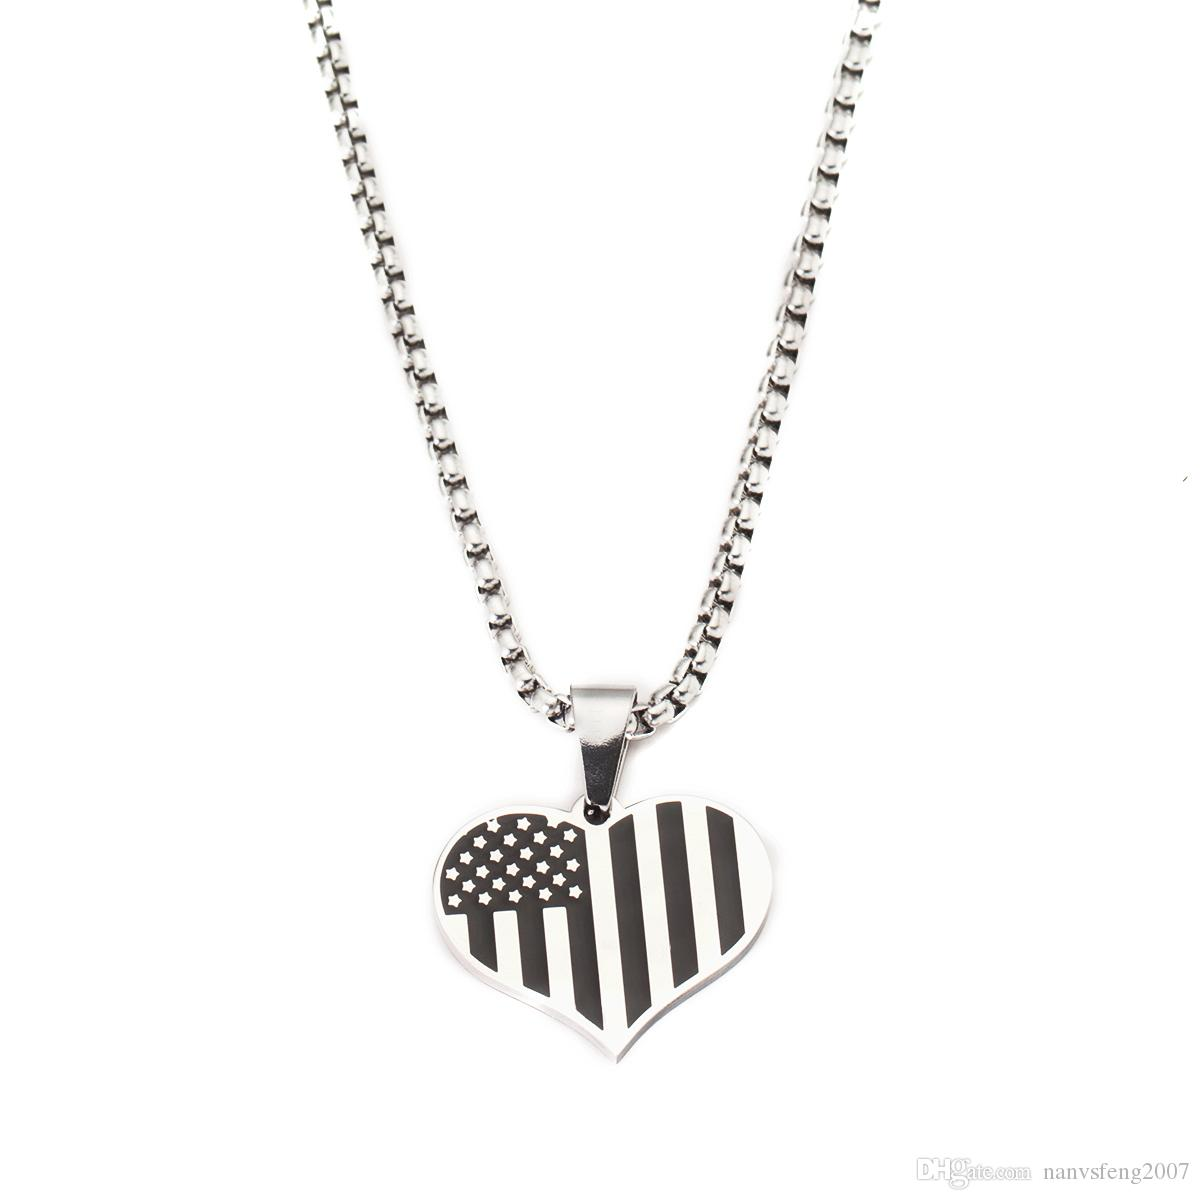 Stainless Steel American Flag USA Patriot Stars and Stripes Heart Pendant Necklace